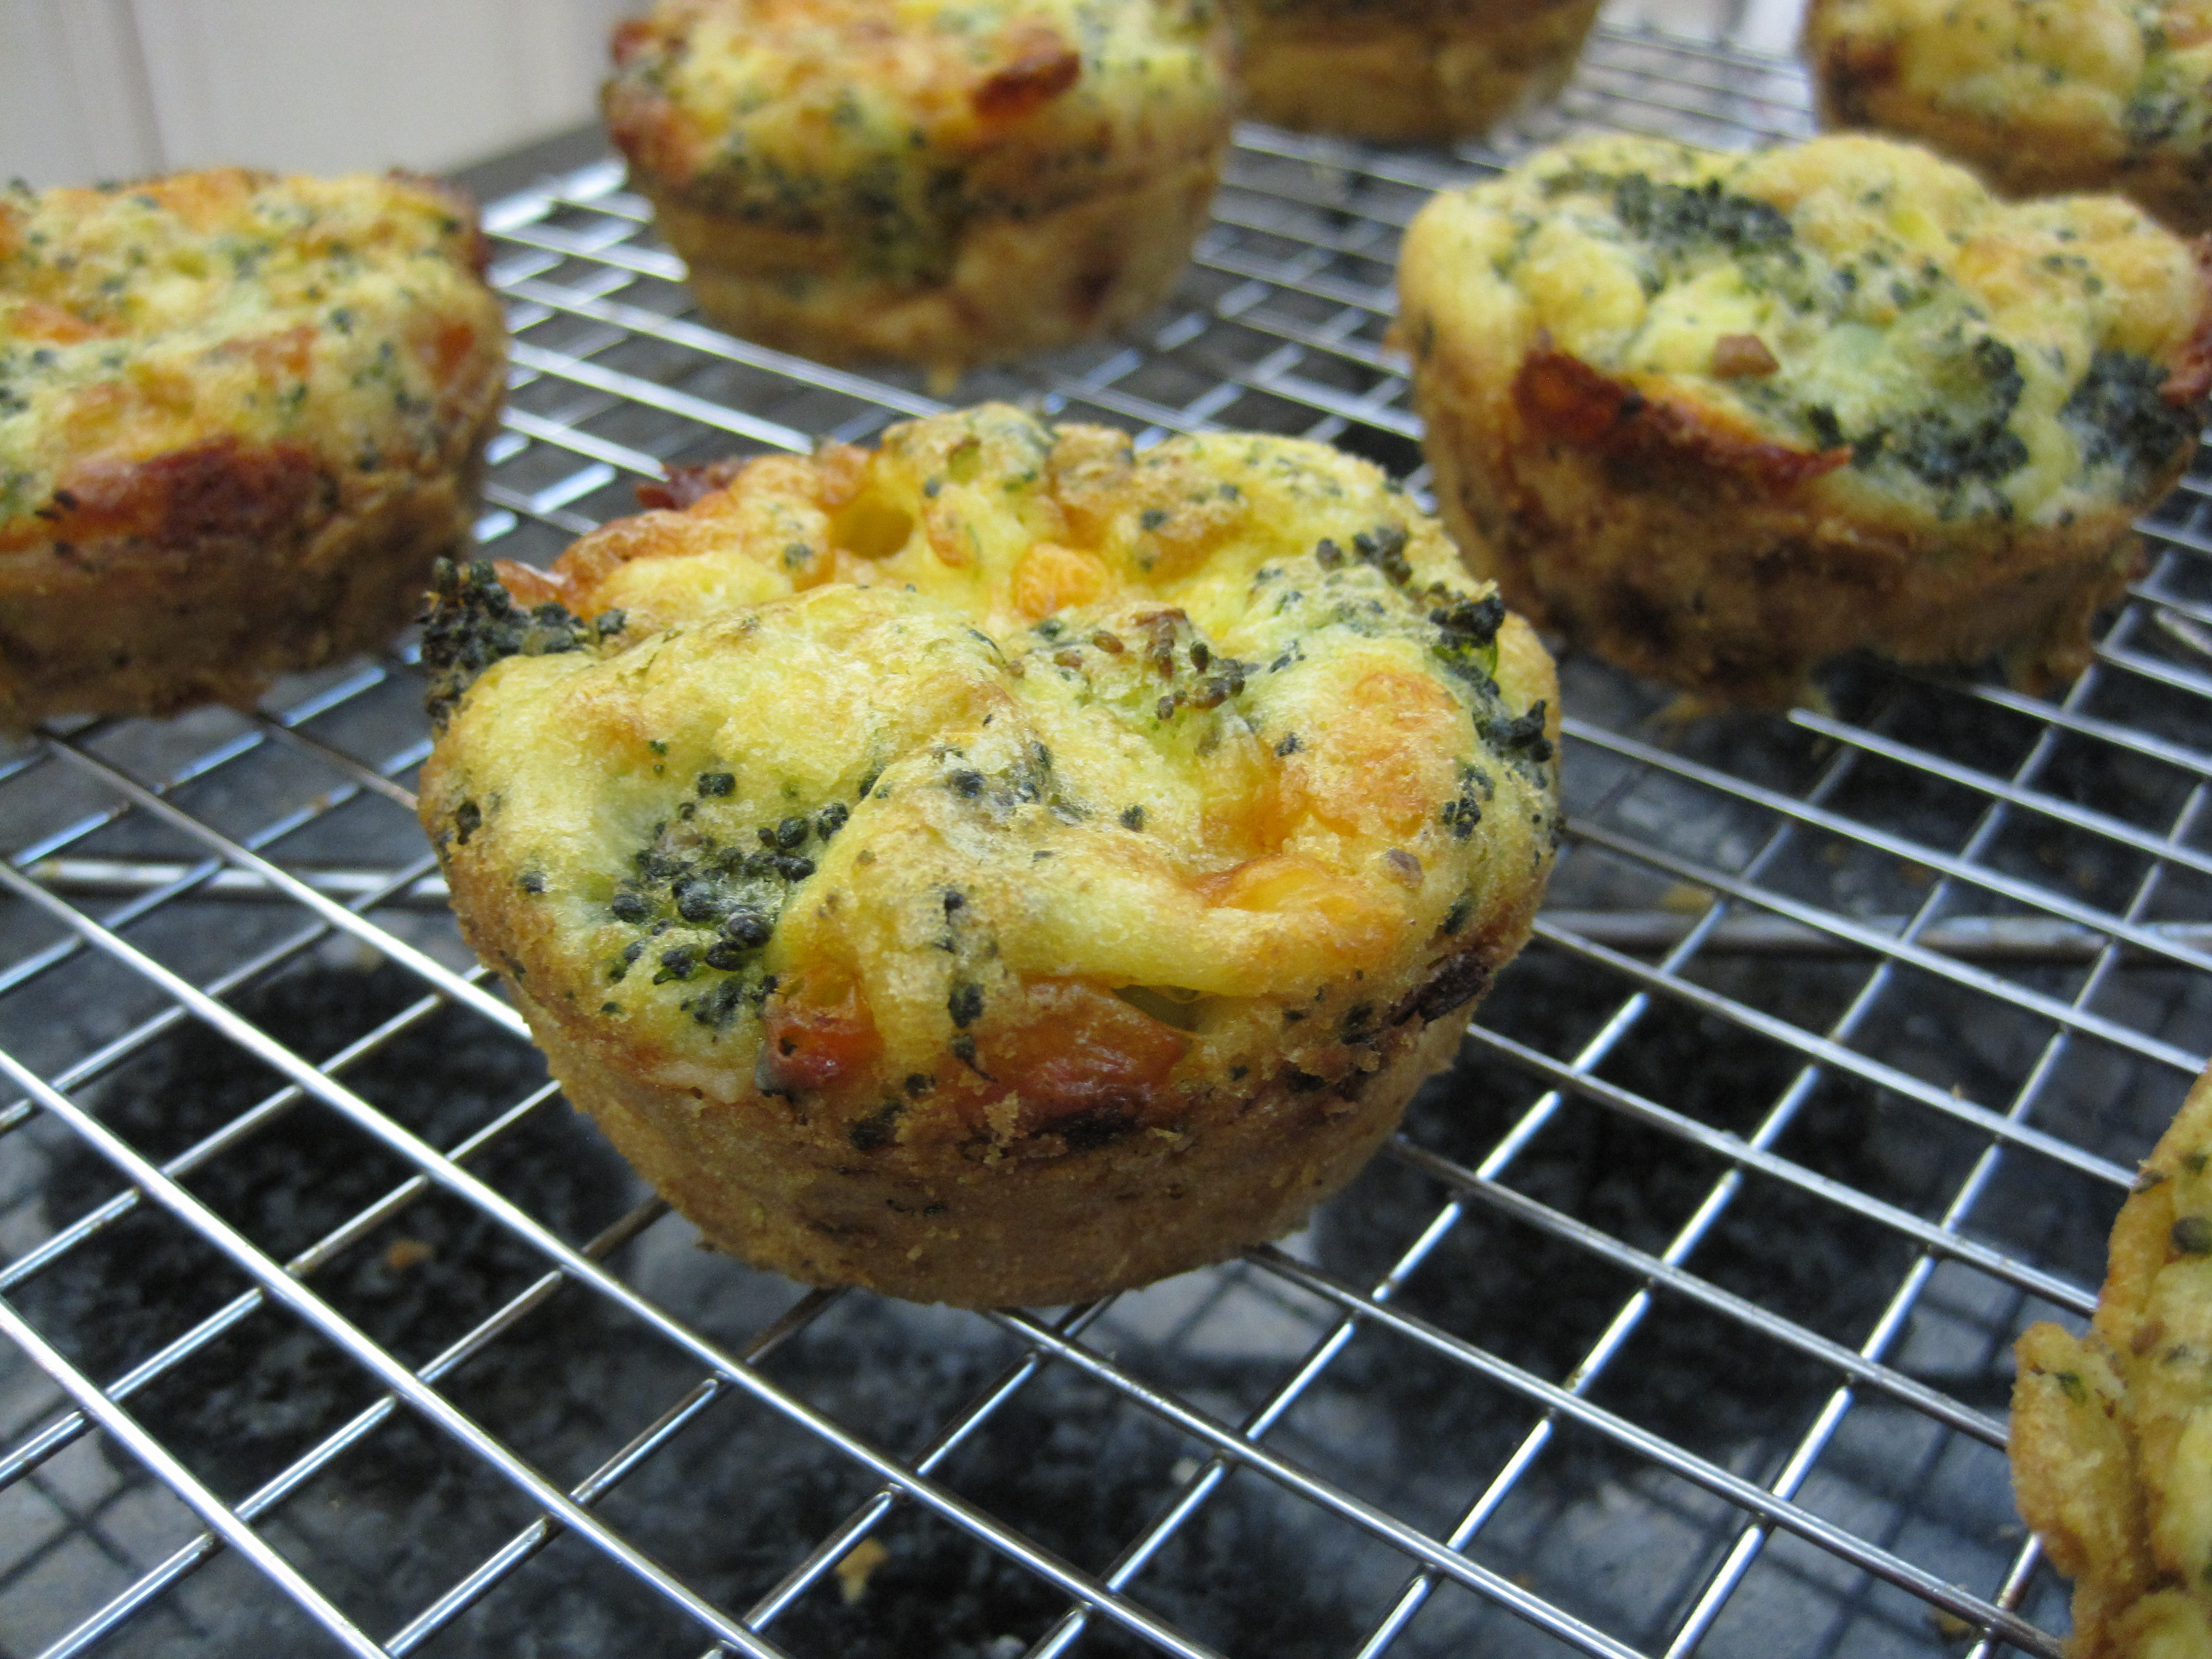 Breakfast Muffins Recipe  Broccoli Egg and Cheese Breakfast Muffins with a gluten